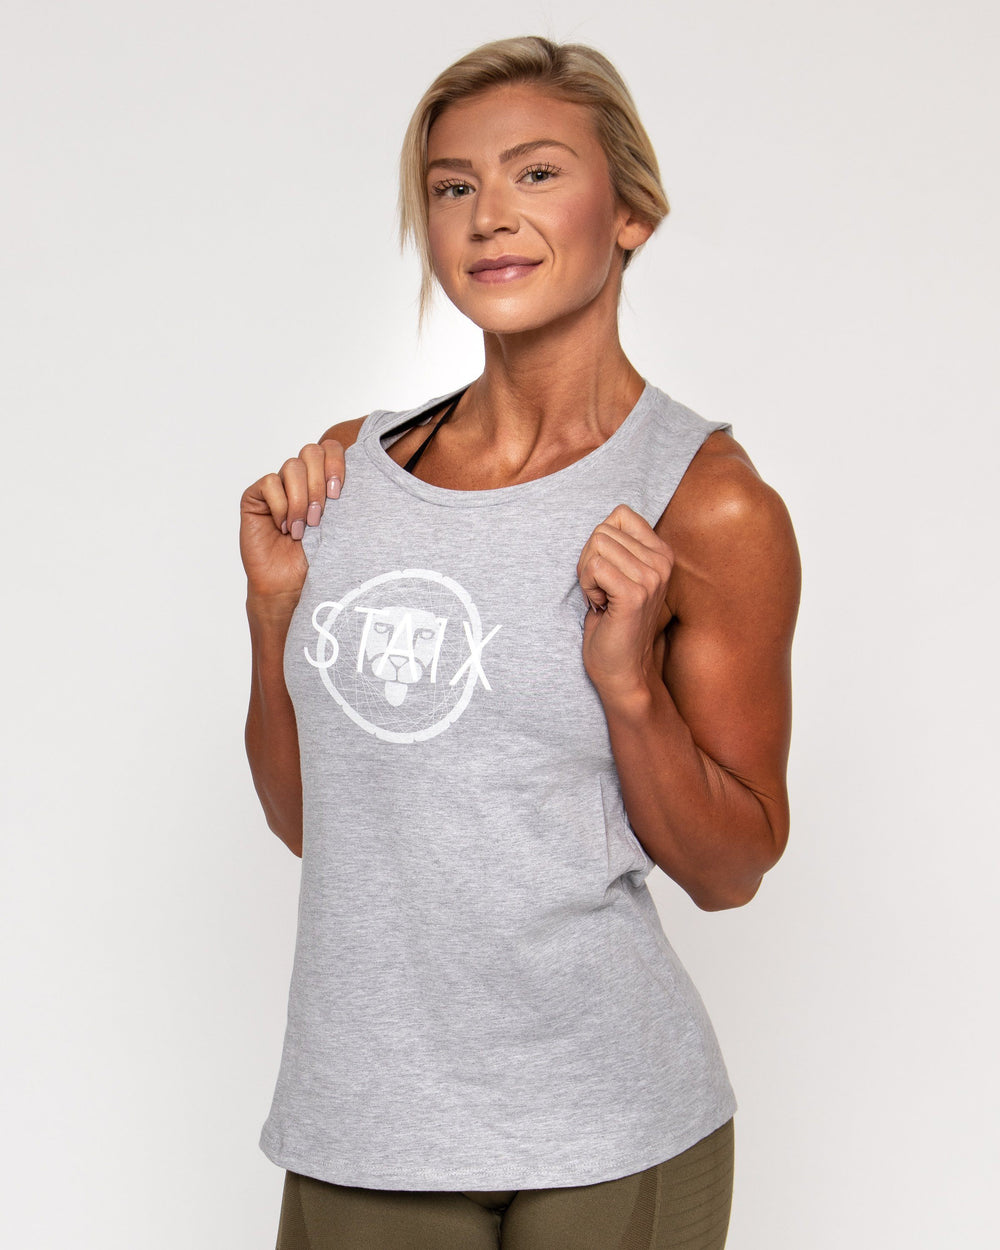 ALL DAY MUSCLE TANK WOMEN'S TANKS STAIX S LT GRAY